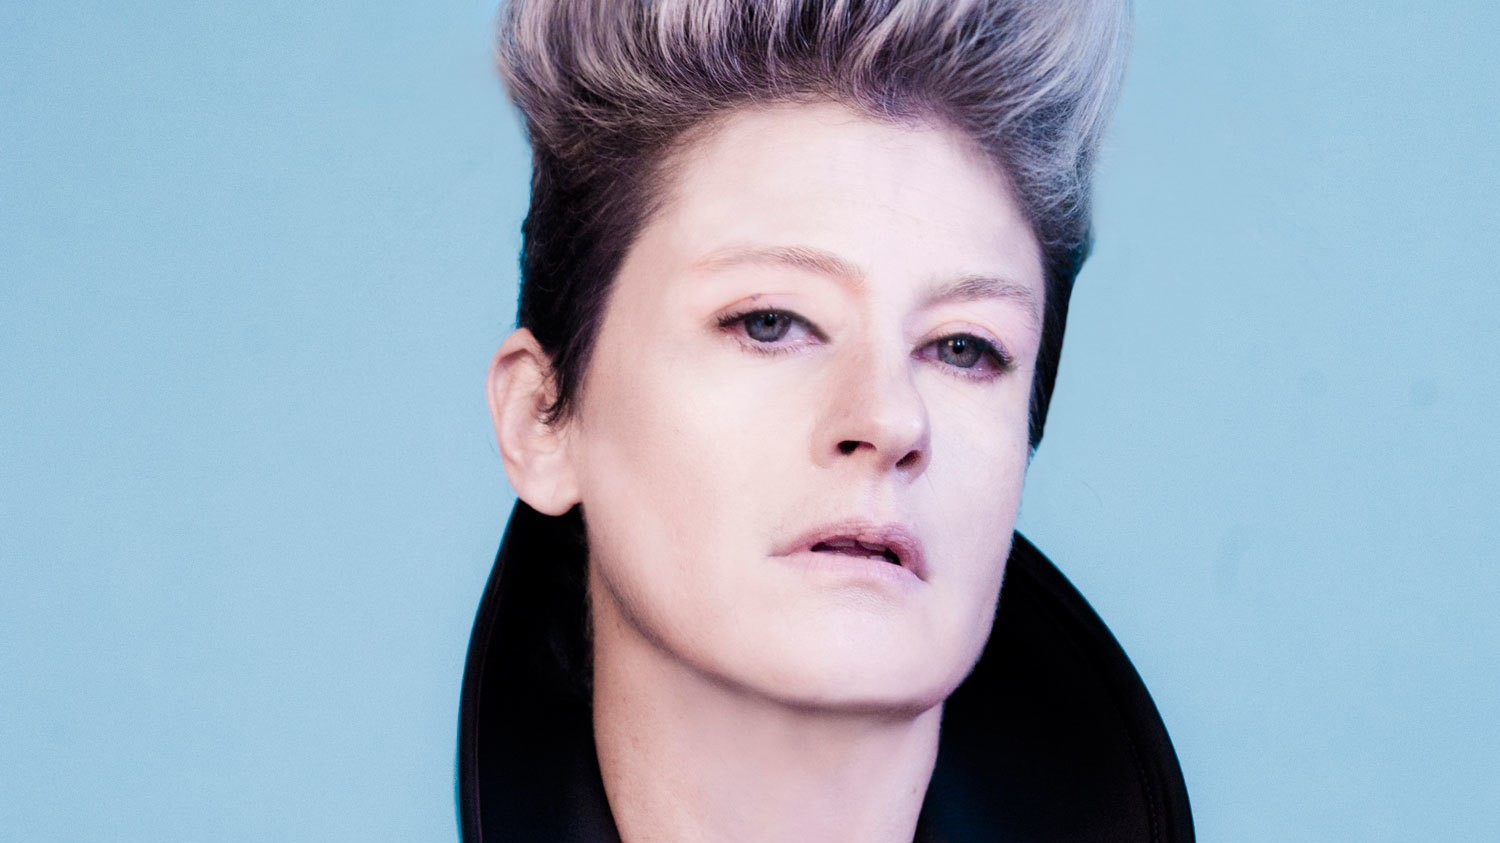 peaches subverts gender and questions identity politics on first record in six years